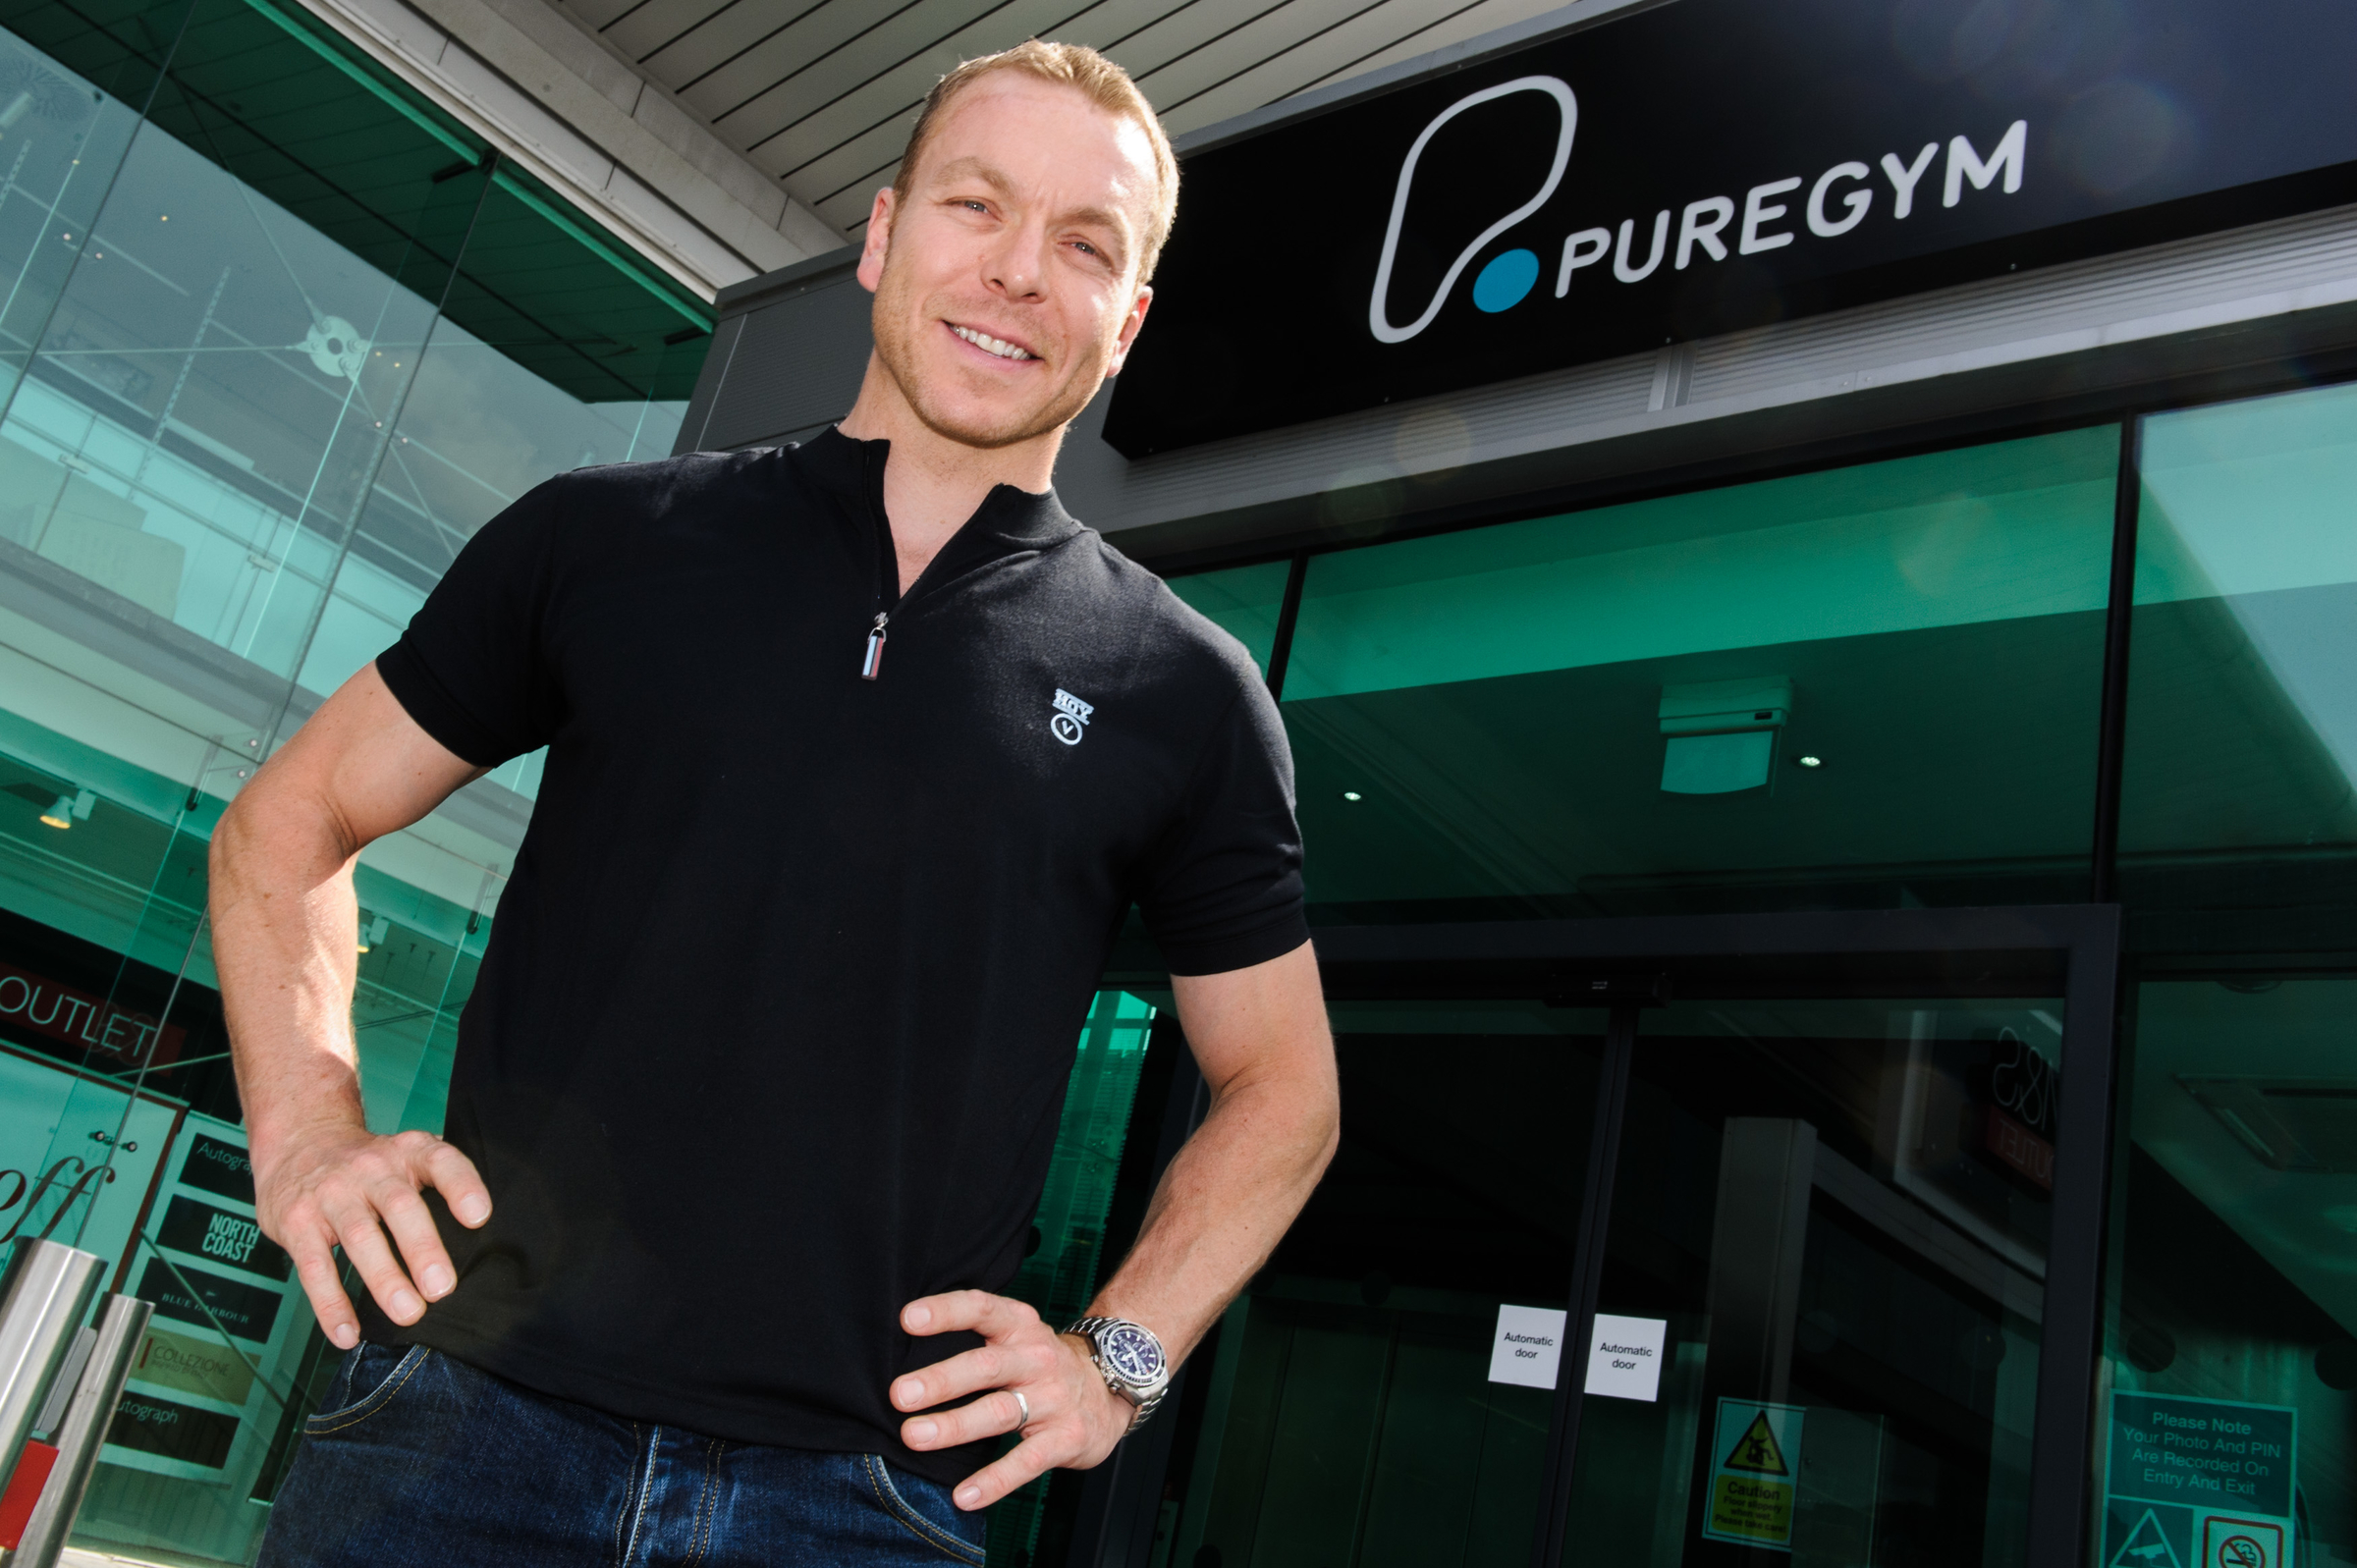 Chris Hoy-backed Pure Gym to gain financial mass with IPO